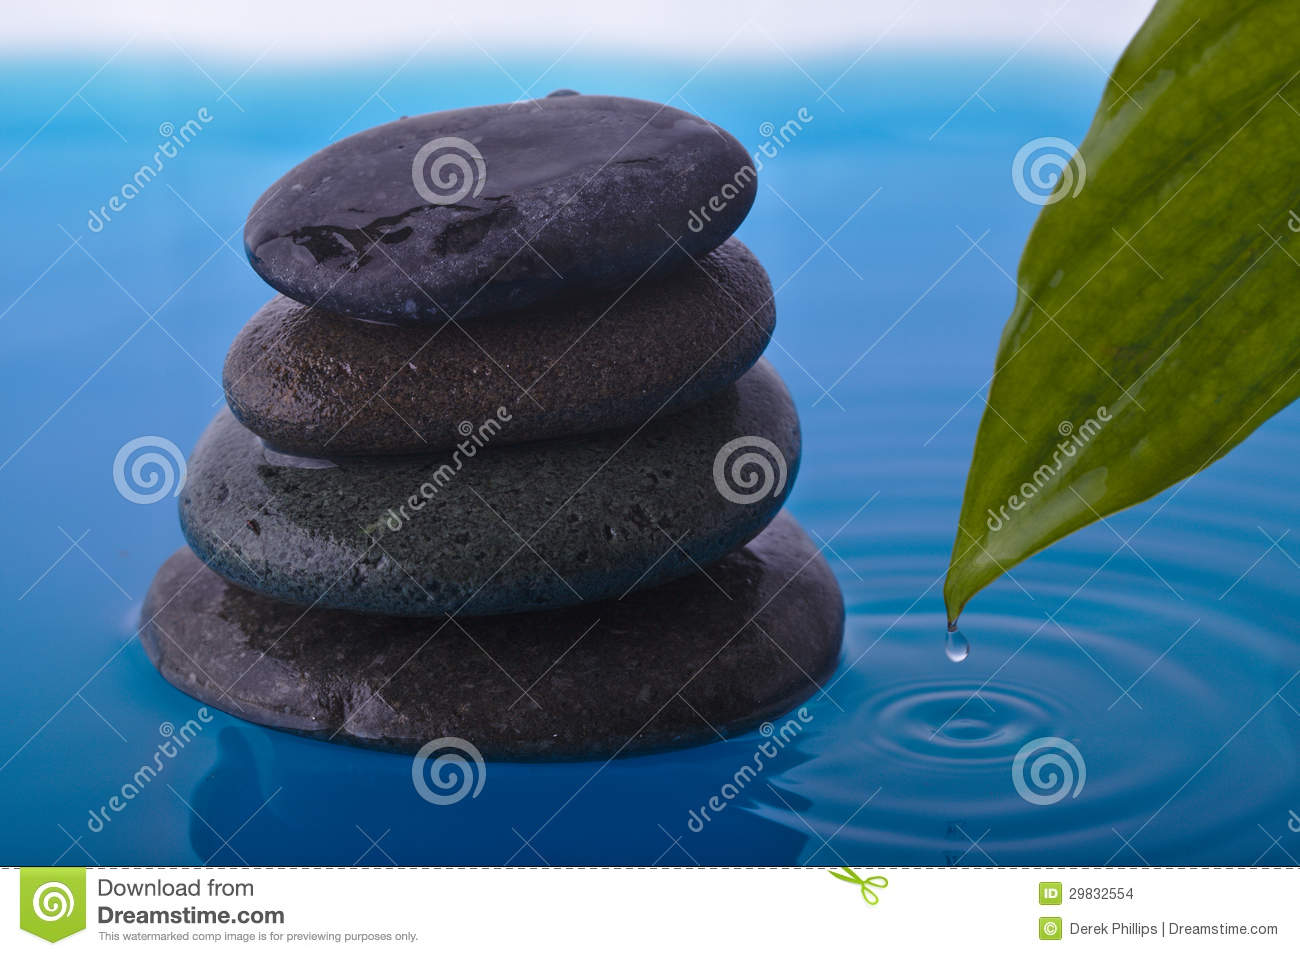 Zen Stone with Water ripples and Peace Plant Leaf with drop Zen Water Images